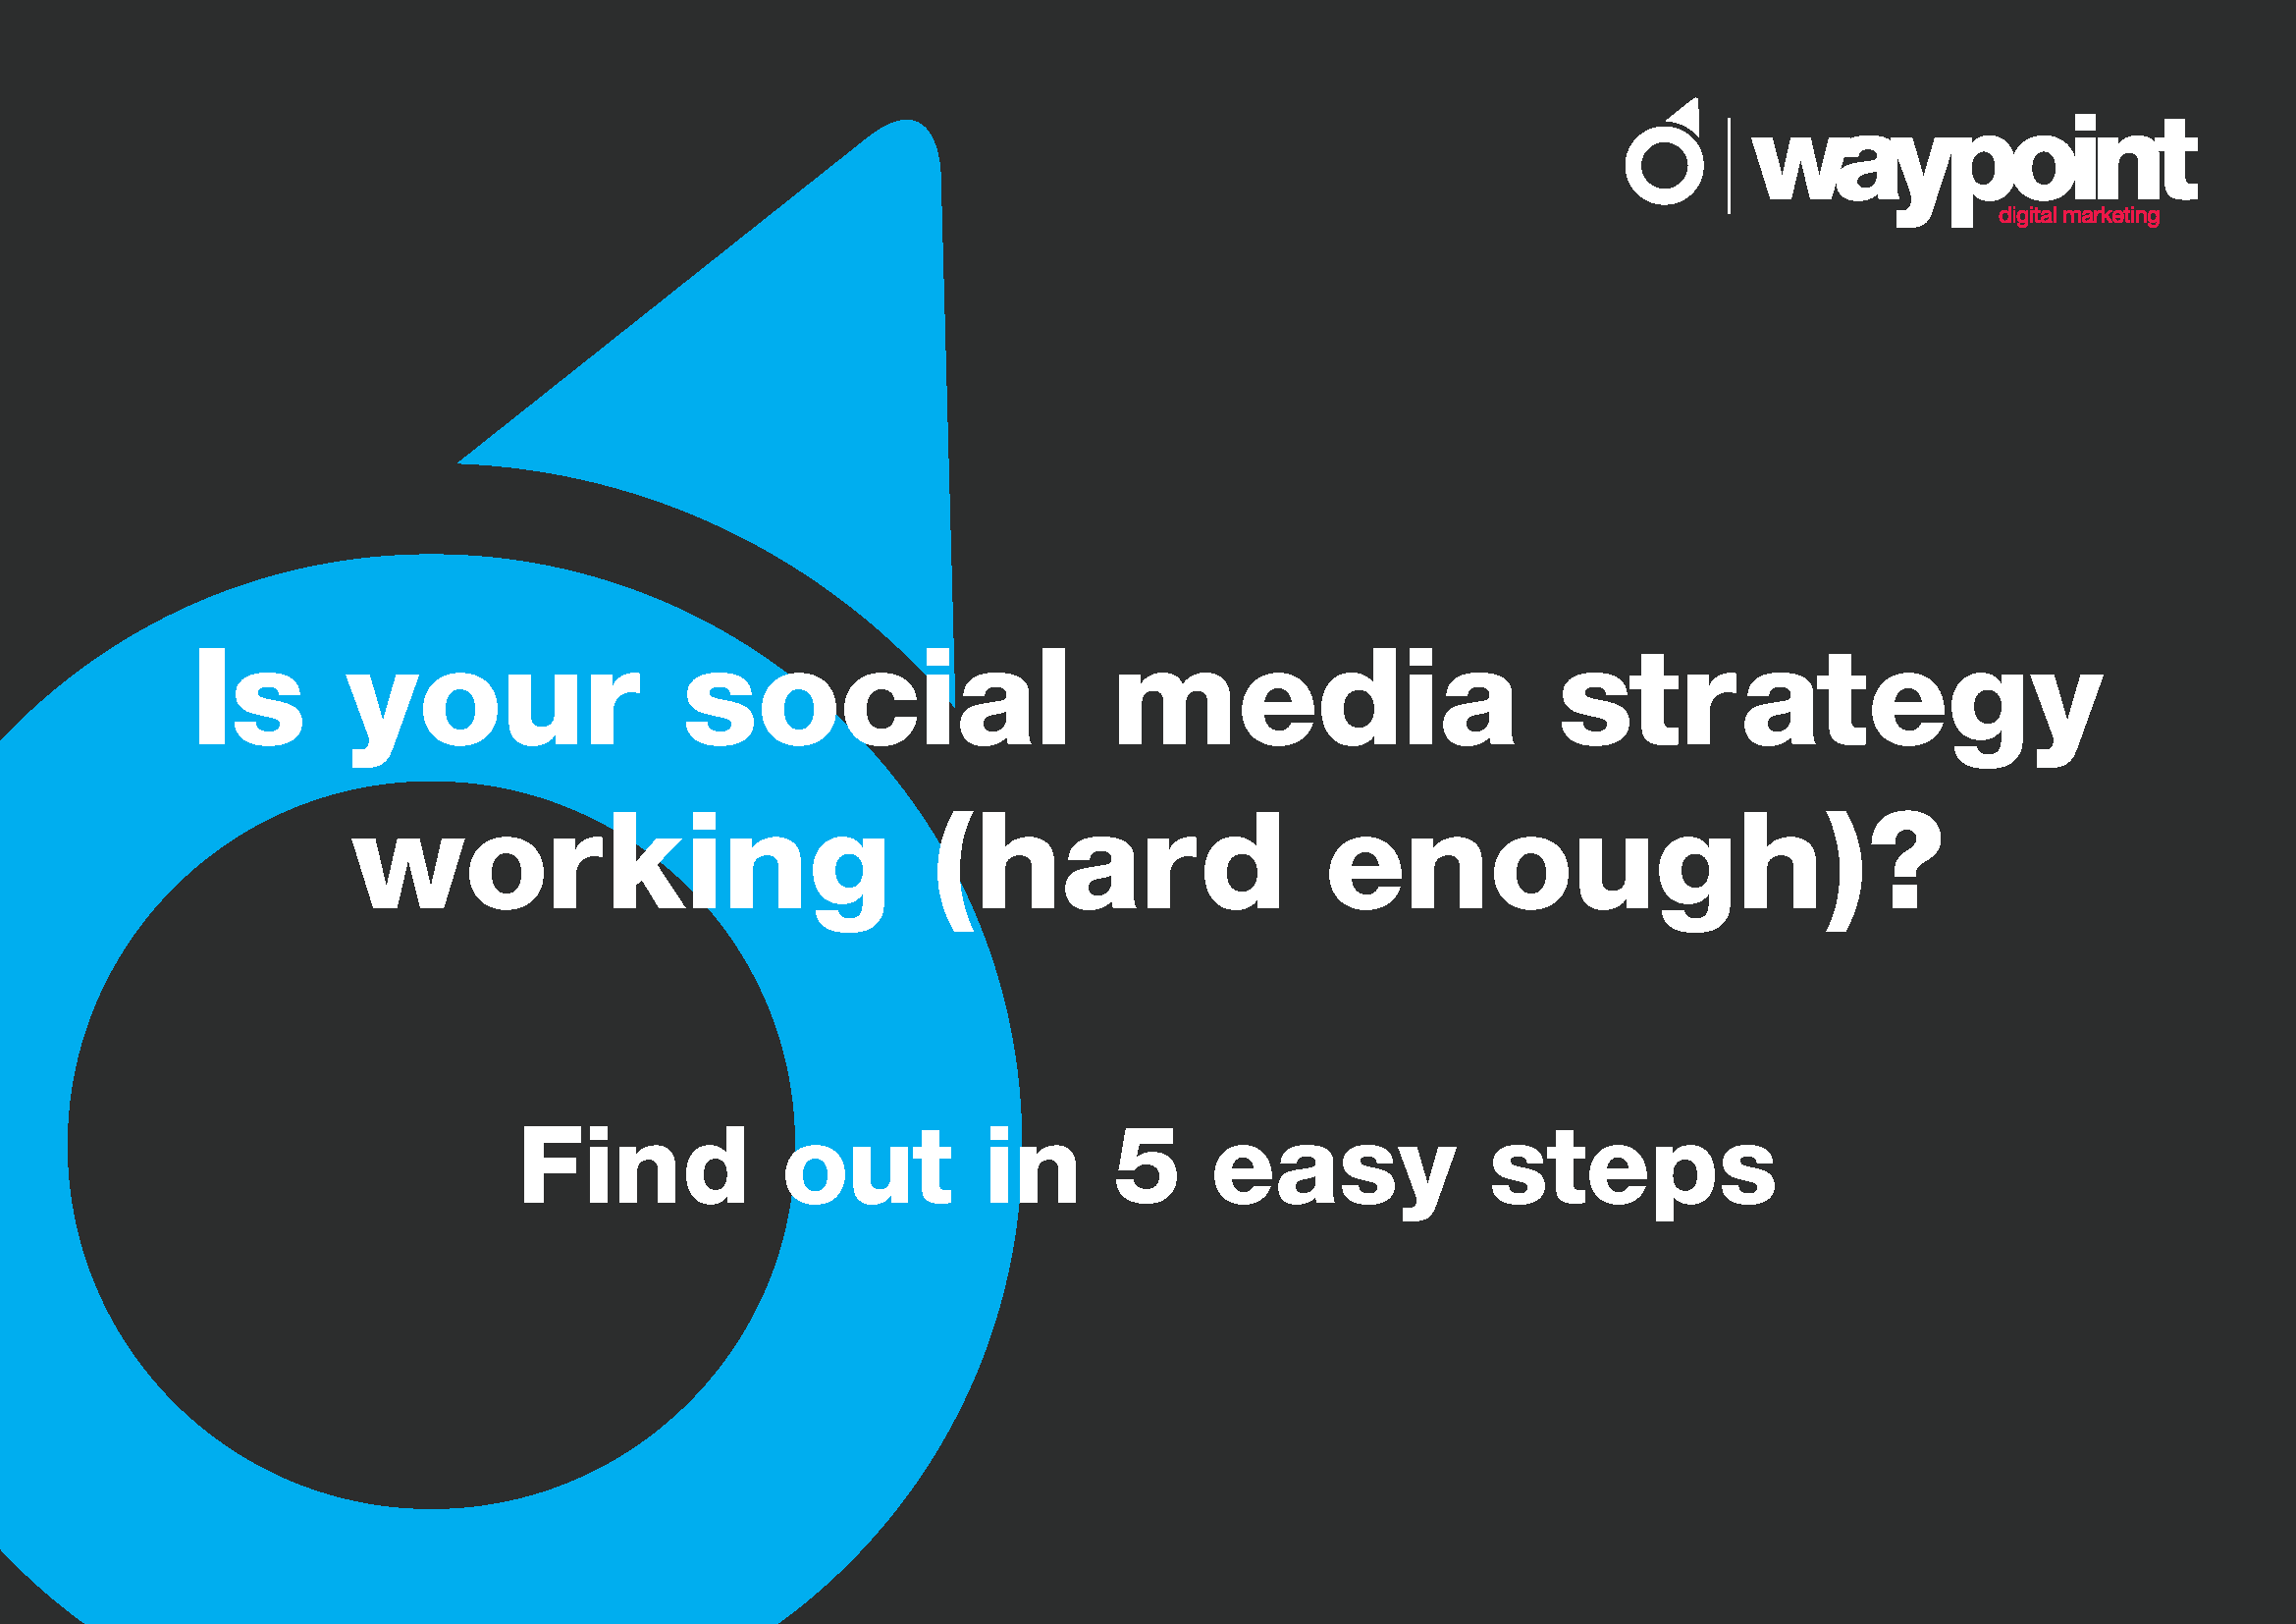 Is your social media strategy working hard enough